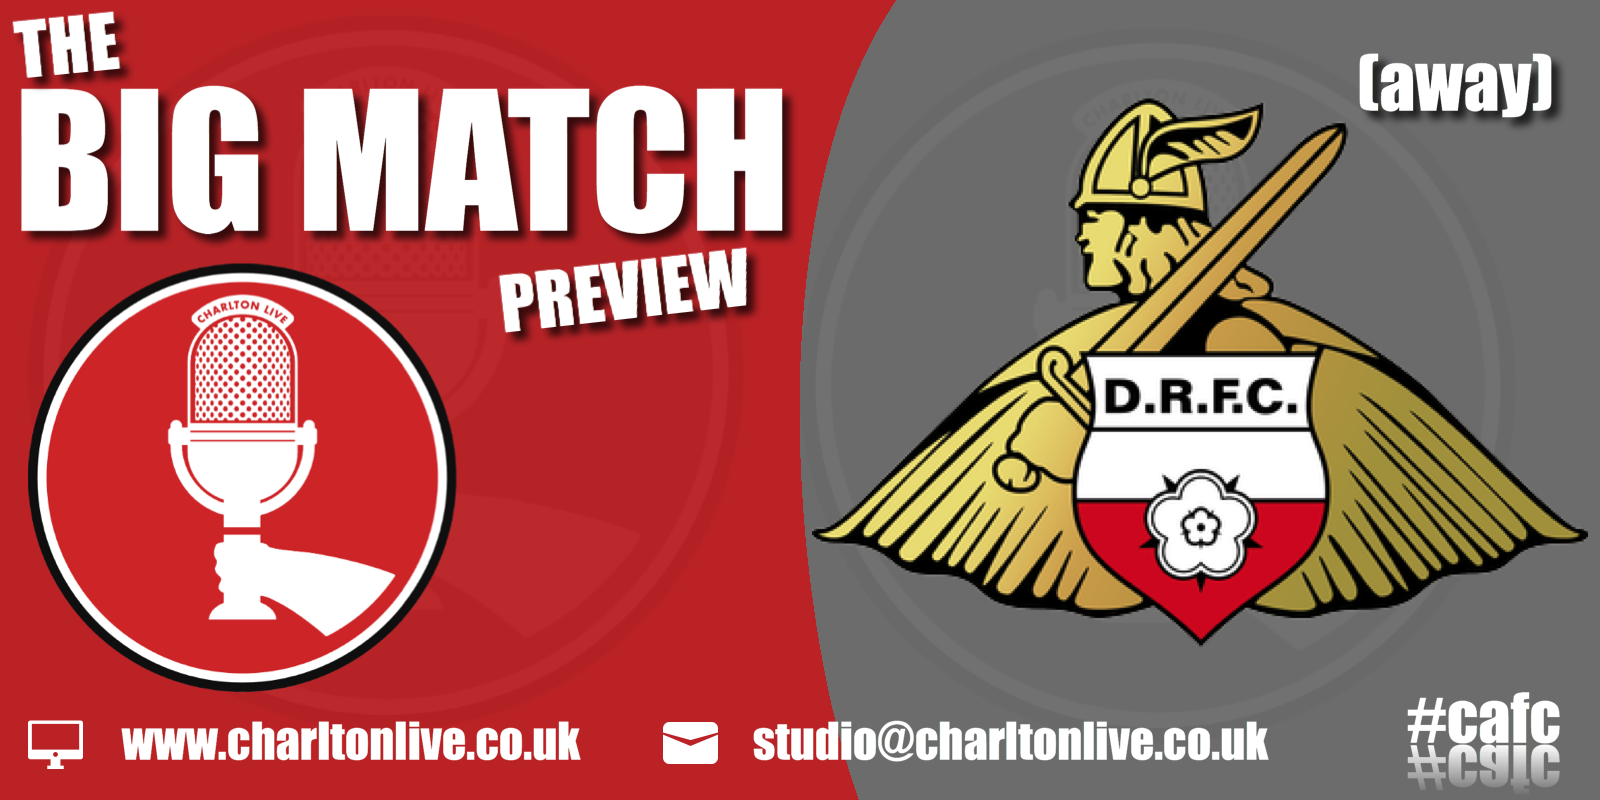 Join Louis Mendez, Tom Wallin and Nathan Muller as they react to Roland Duchatelet's bizarre suggestion that the EFL should acquire Charlton Athletic Football Club. […]